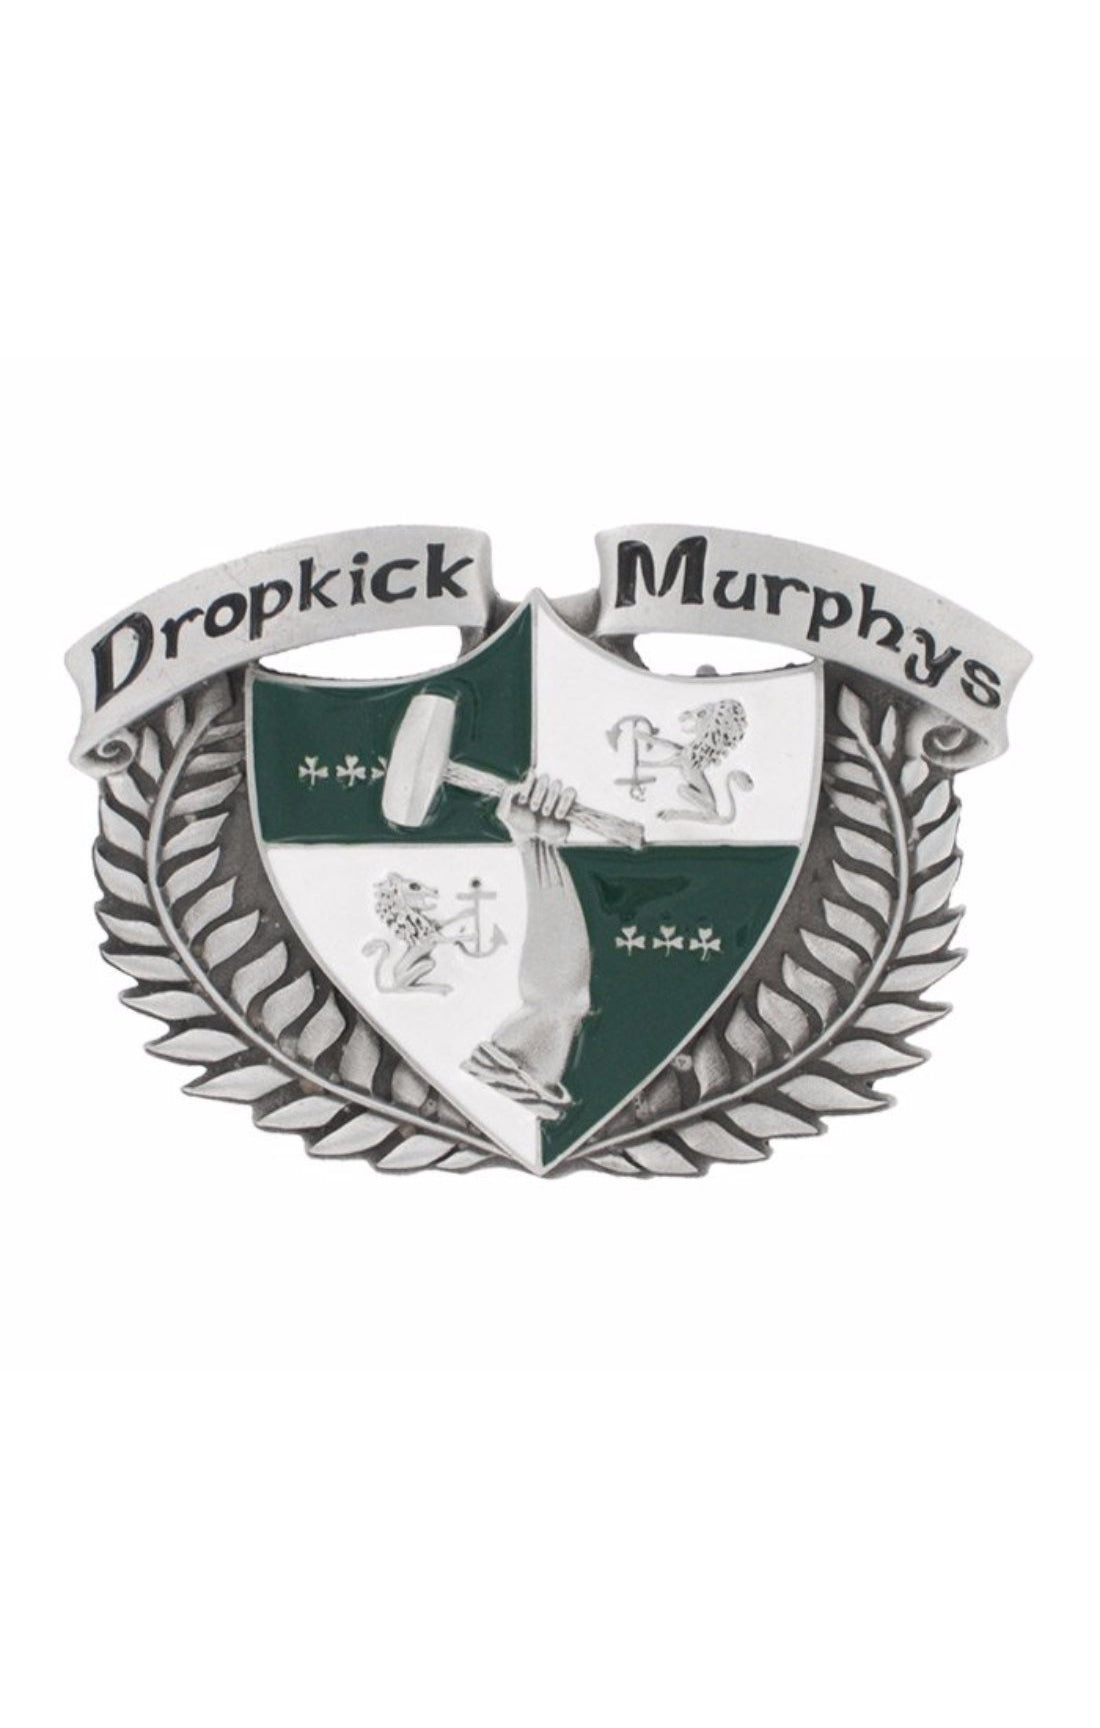 The DROPKICK MURPHY'S Buckle